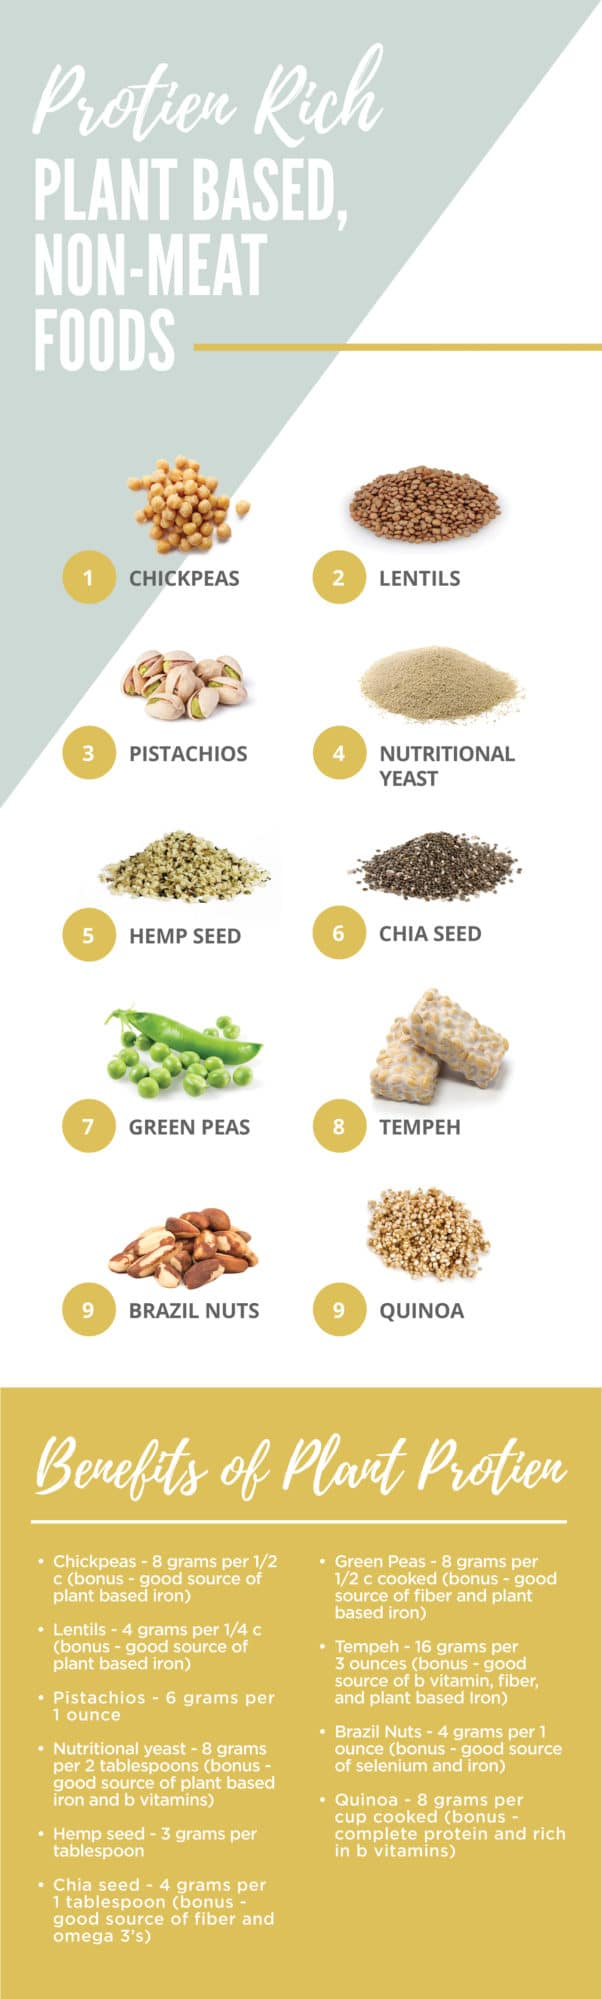 plant based foods rich in protein! #health #vegan #nutrition #protein